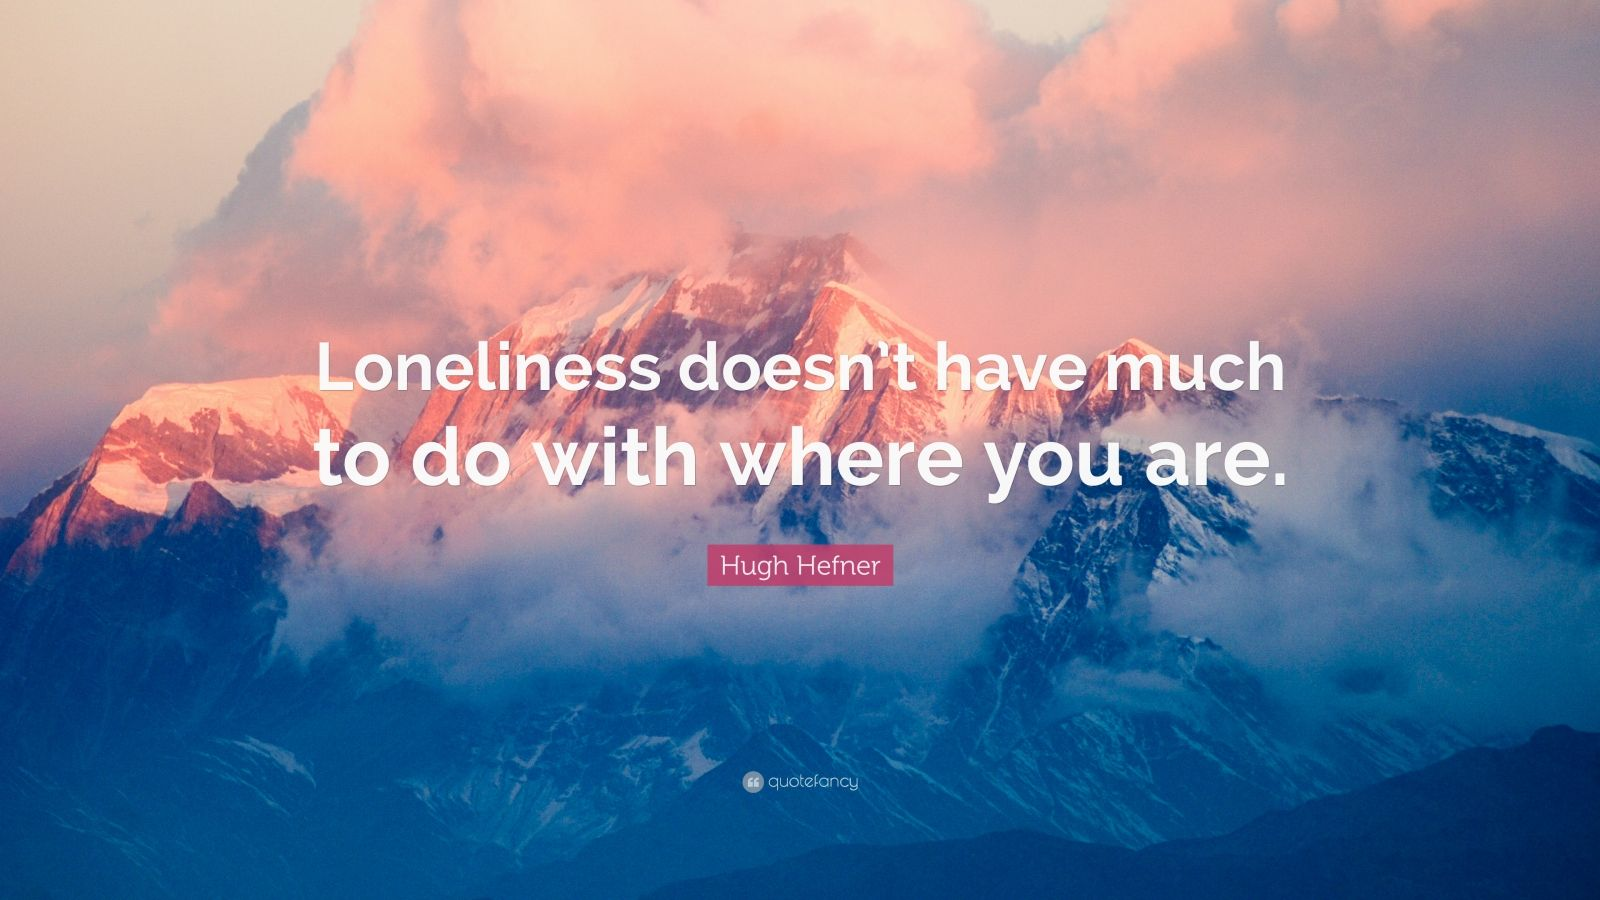 """Hugh Hefner Quote: """"Loneliness doesn't have much to do with where you are."""""""